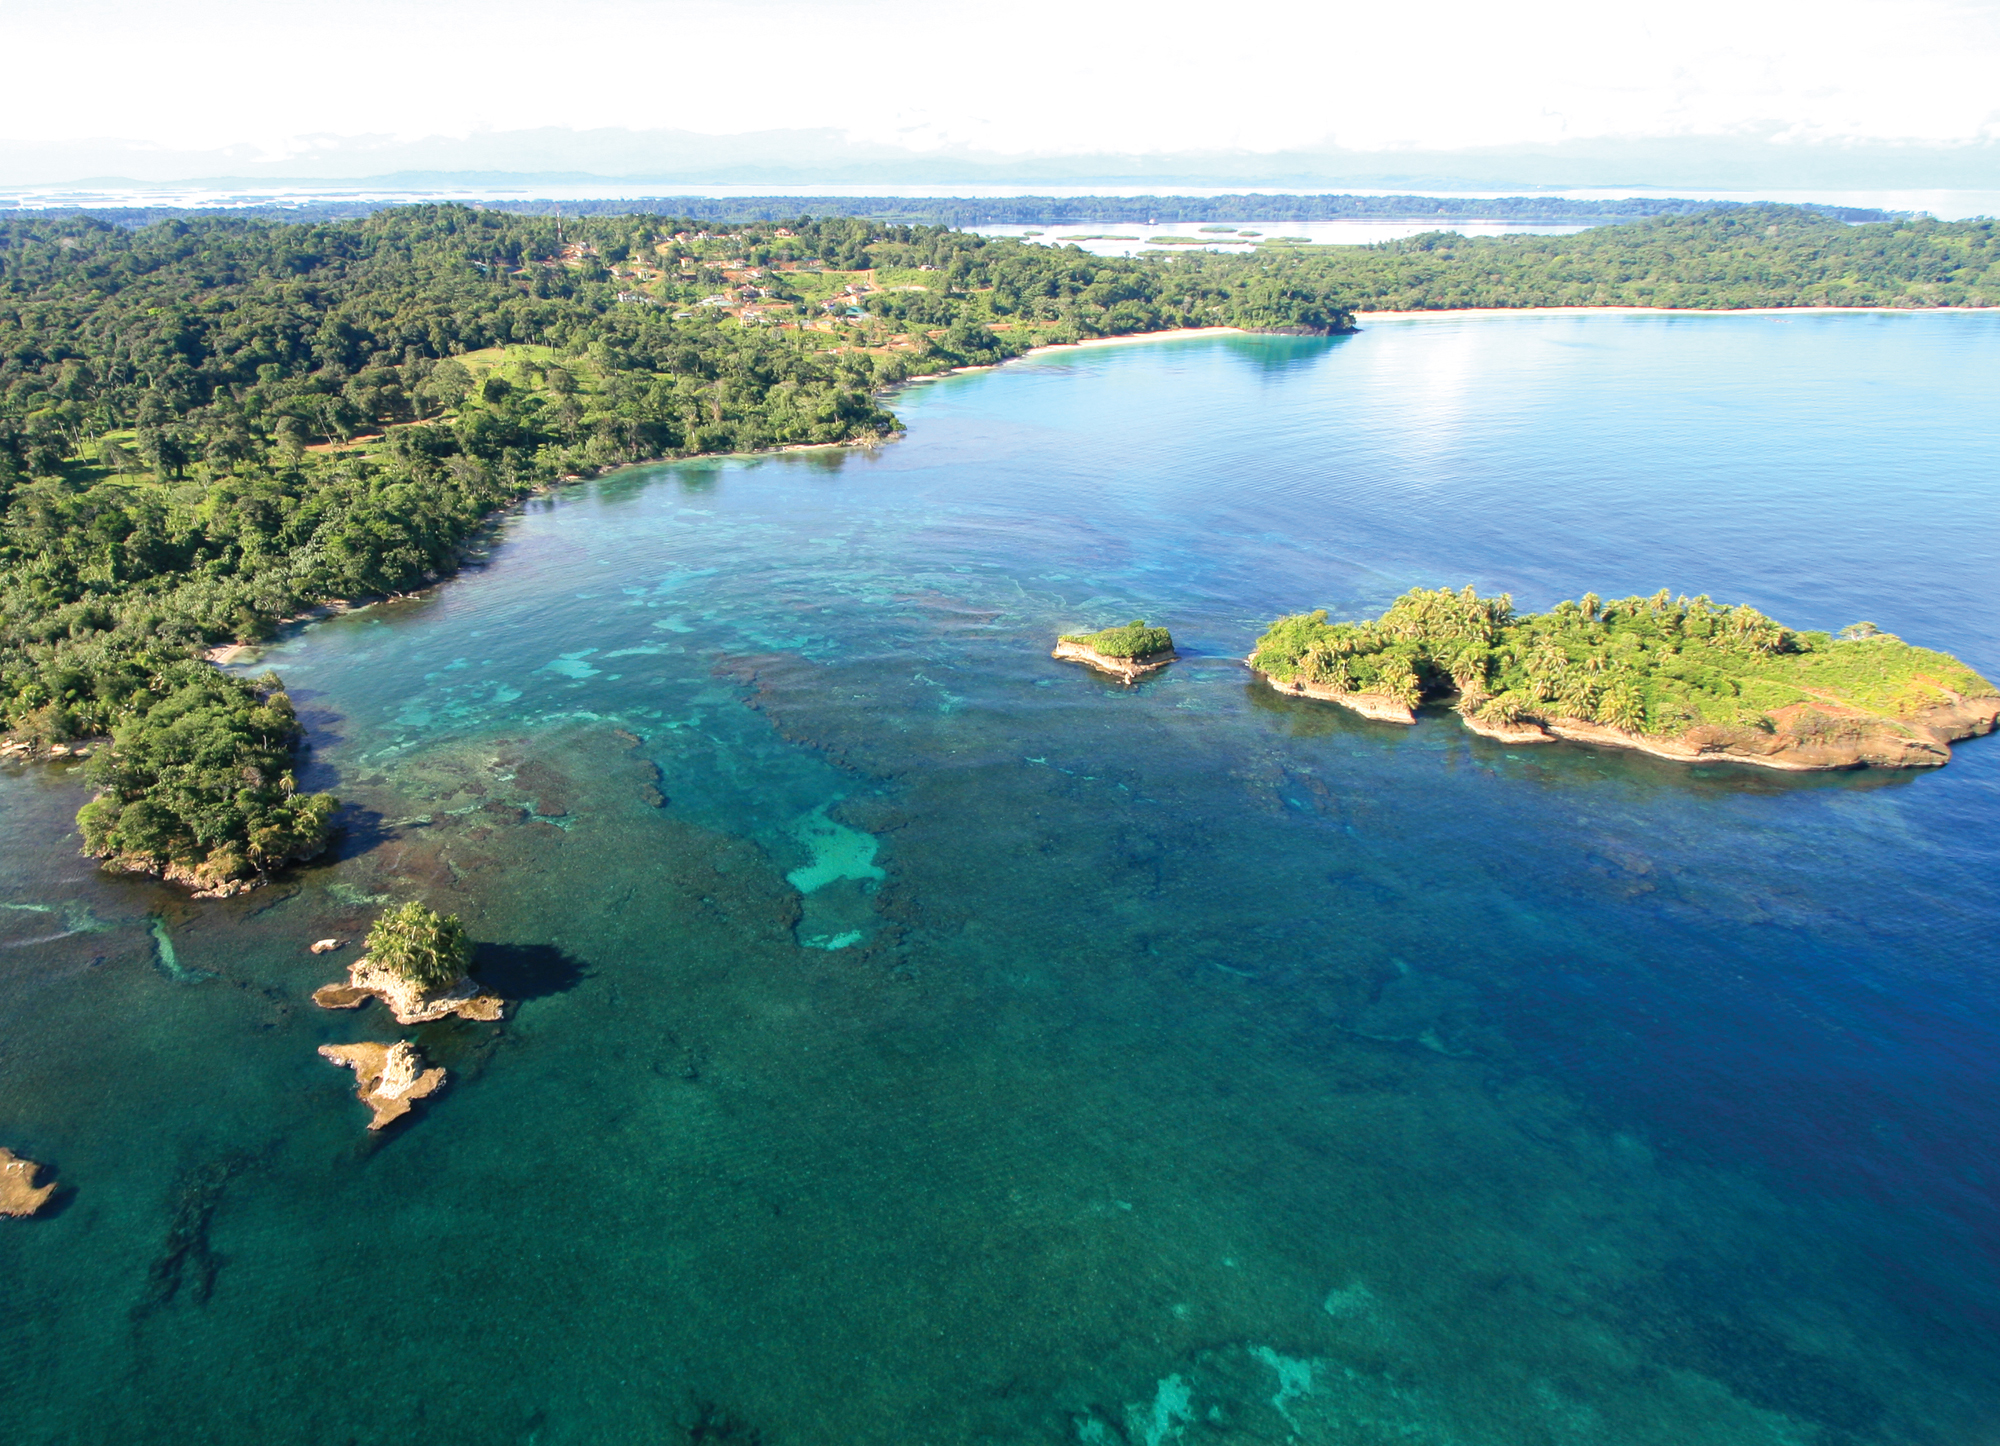 Red Frog Beach Island Resort Certified For Its: Red Frog Beach Marina, Panama Joins The IGY Marinas